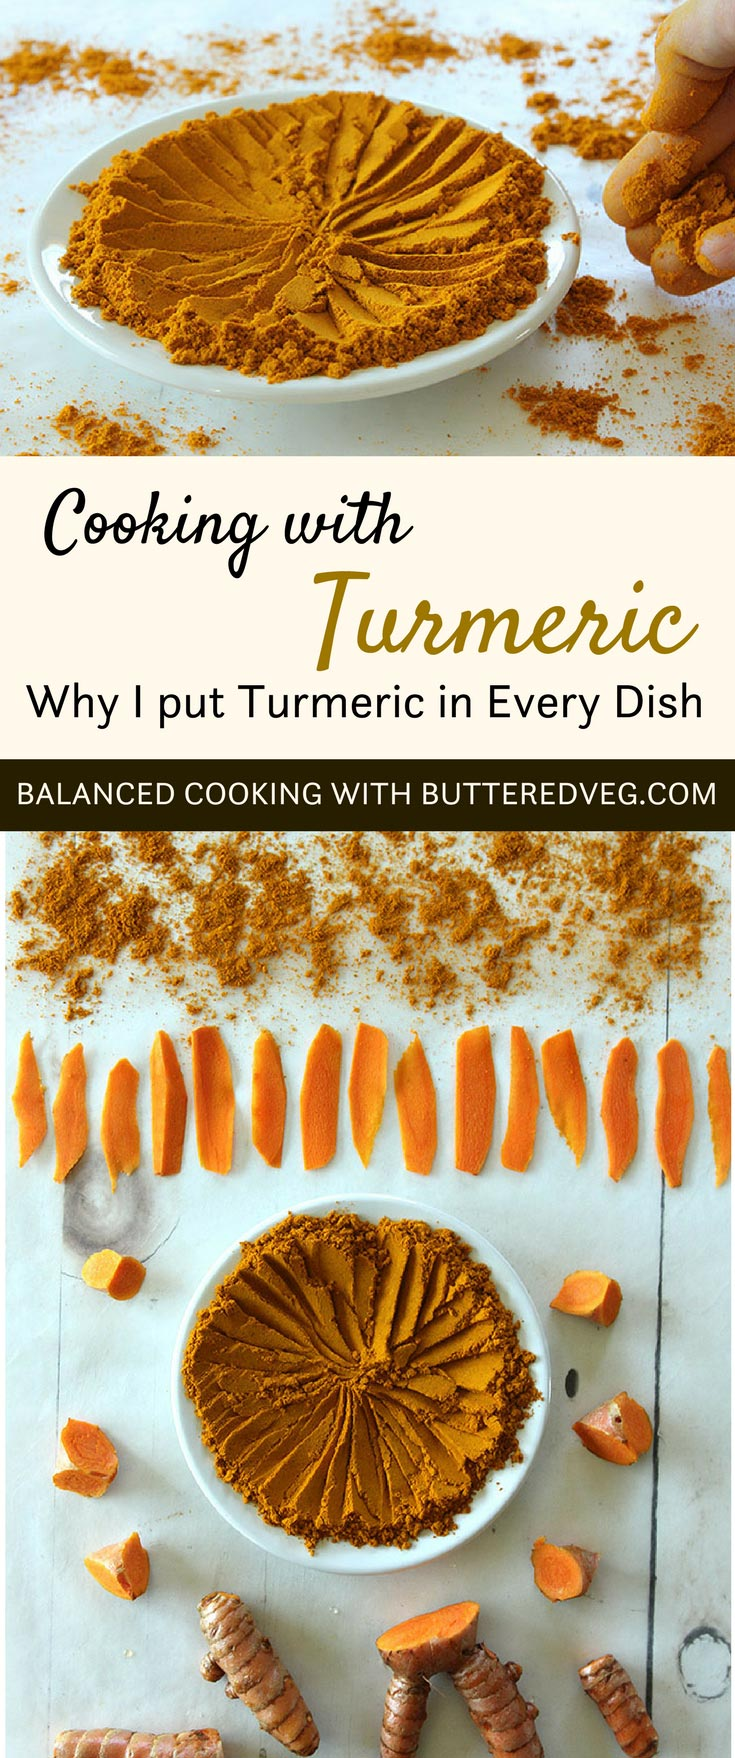 I Was Told to 'Put Turmeric in Every Dish.' Here's Why I'm Glad I Listened!